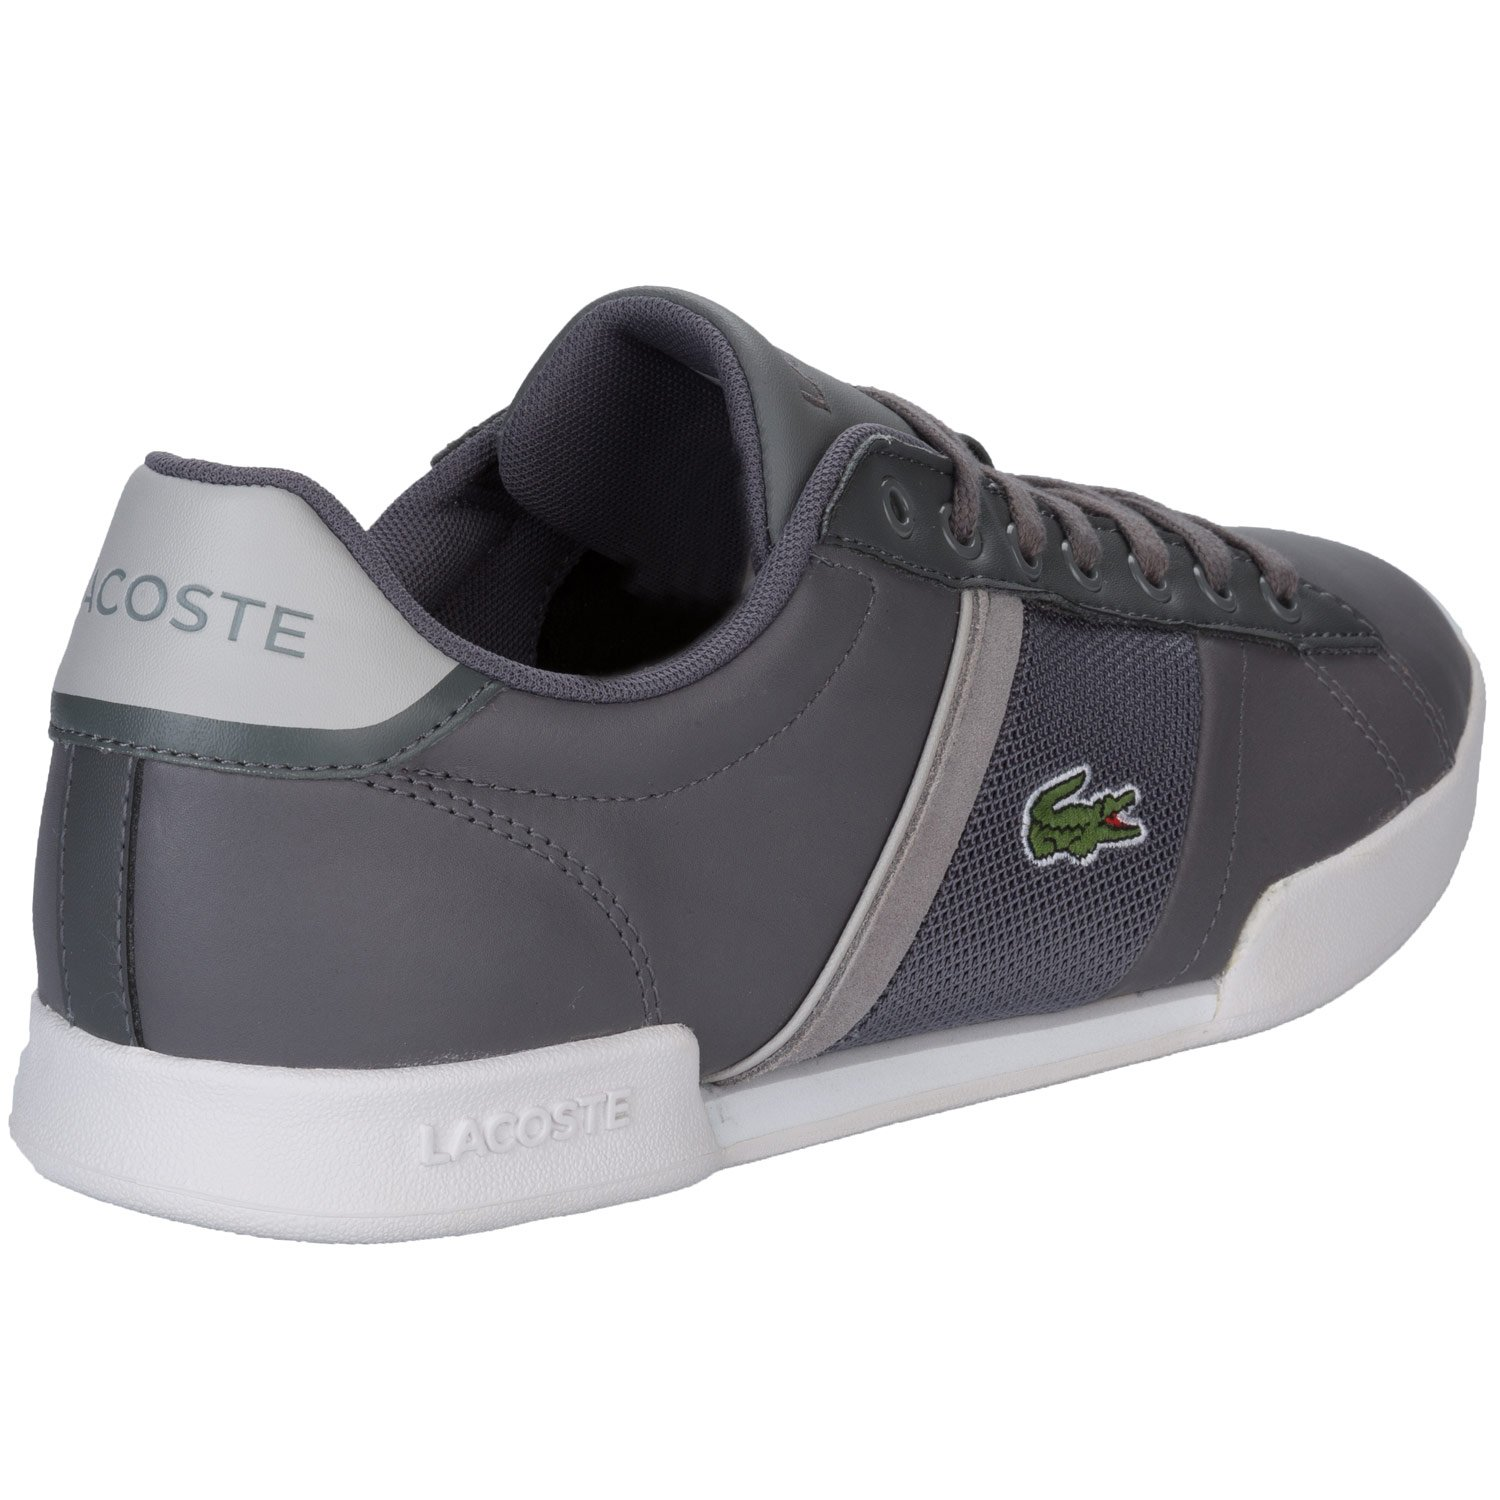 82f20f7e2ed6b Lacoste Mens Mens Deston Trainers in Charcoal - UK 8  Amazon.co.uk  Shoes    Bags